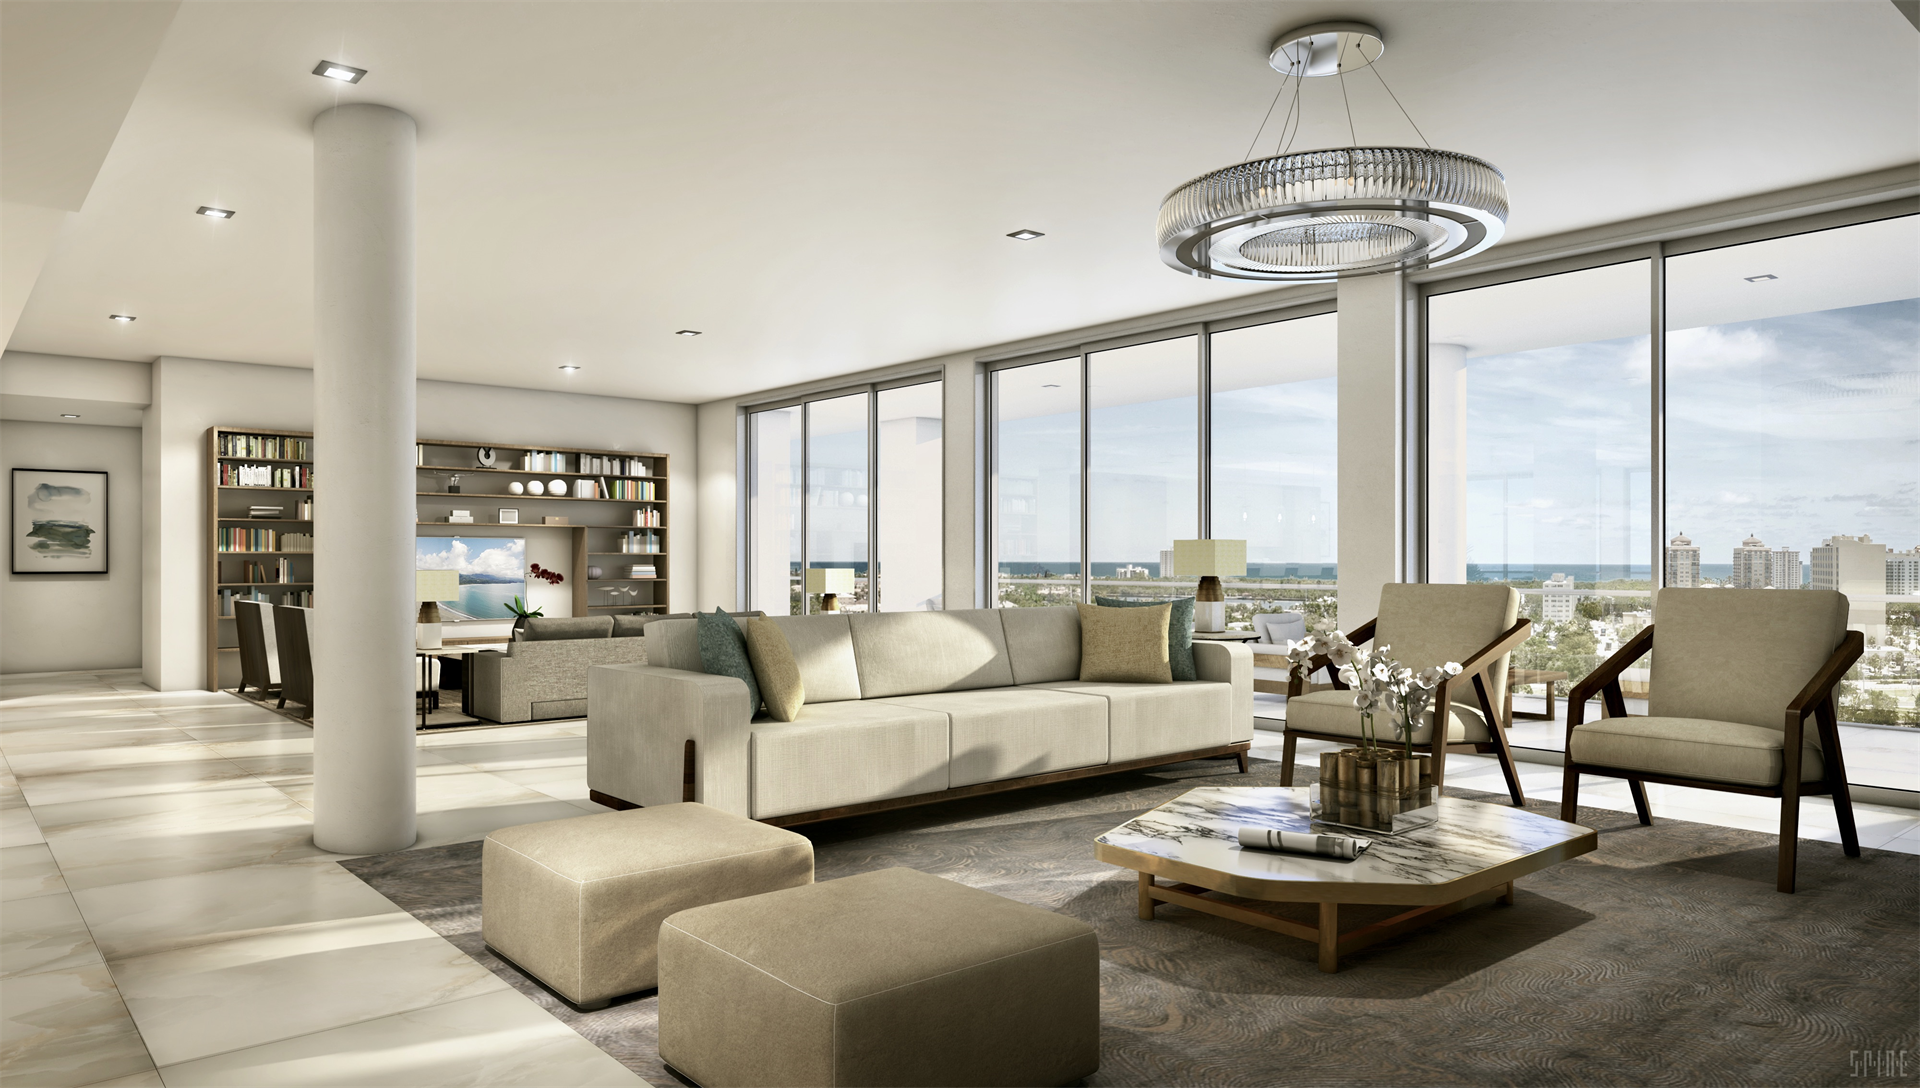 36. Riva Residences Fort Lauderdale building at 1180 North Federal Highway, Fort Lauderdale, FL 33304